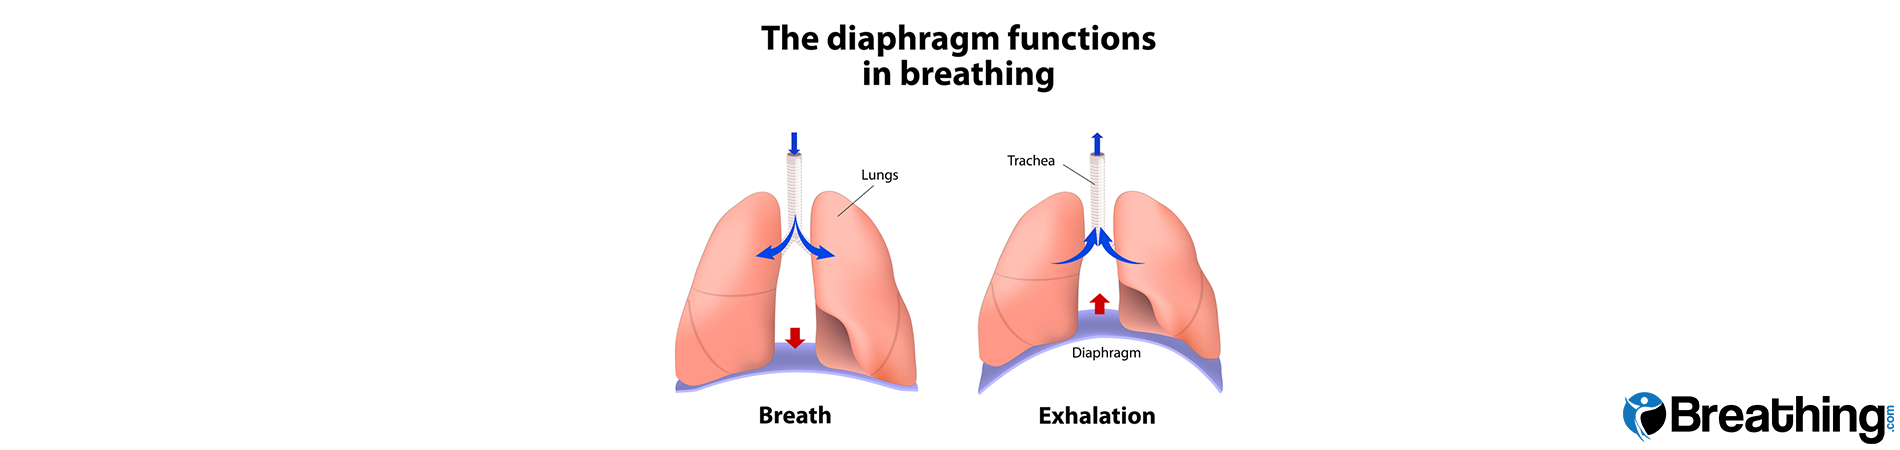 diaphragm development many sources of mediocre to bad information Diaphragmatic Innervation Diagram mr a has had an injury to his diaphragm inability to function properly adversely affecting his breathing there is no established medical treatment